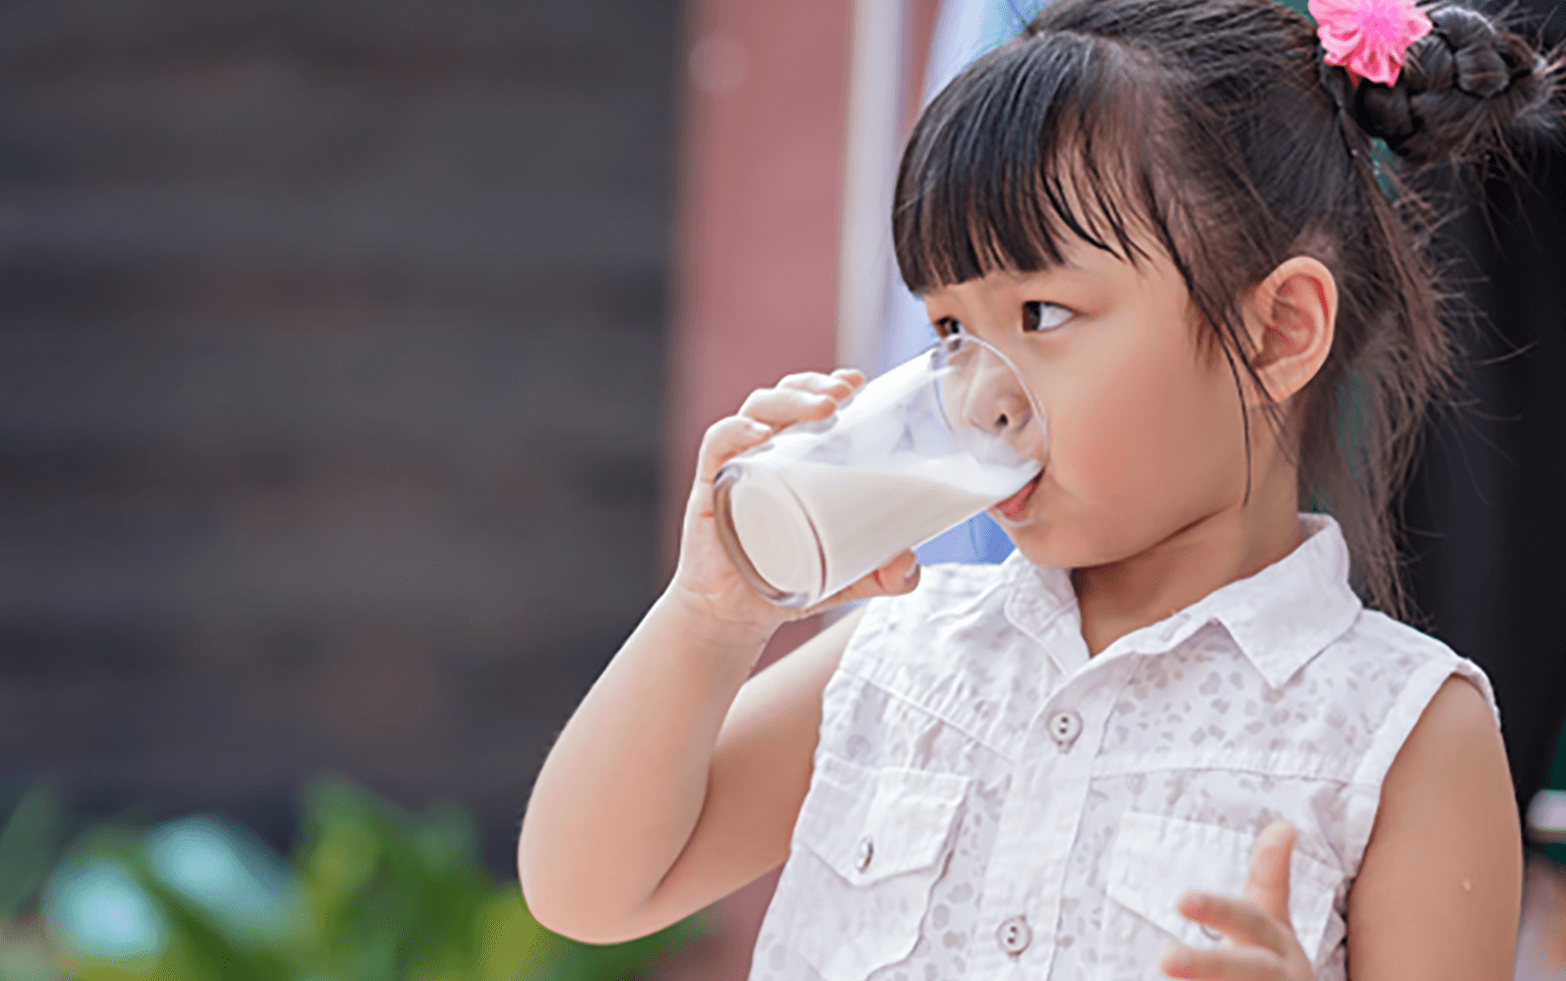 A young girl drinks milk from a glass